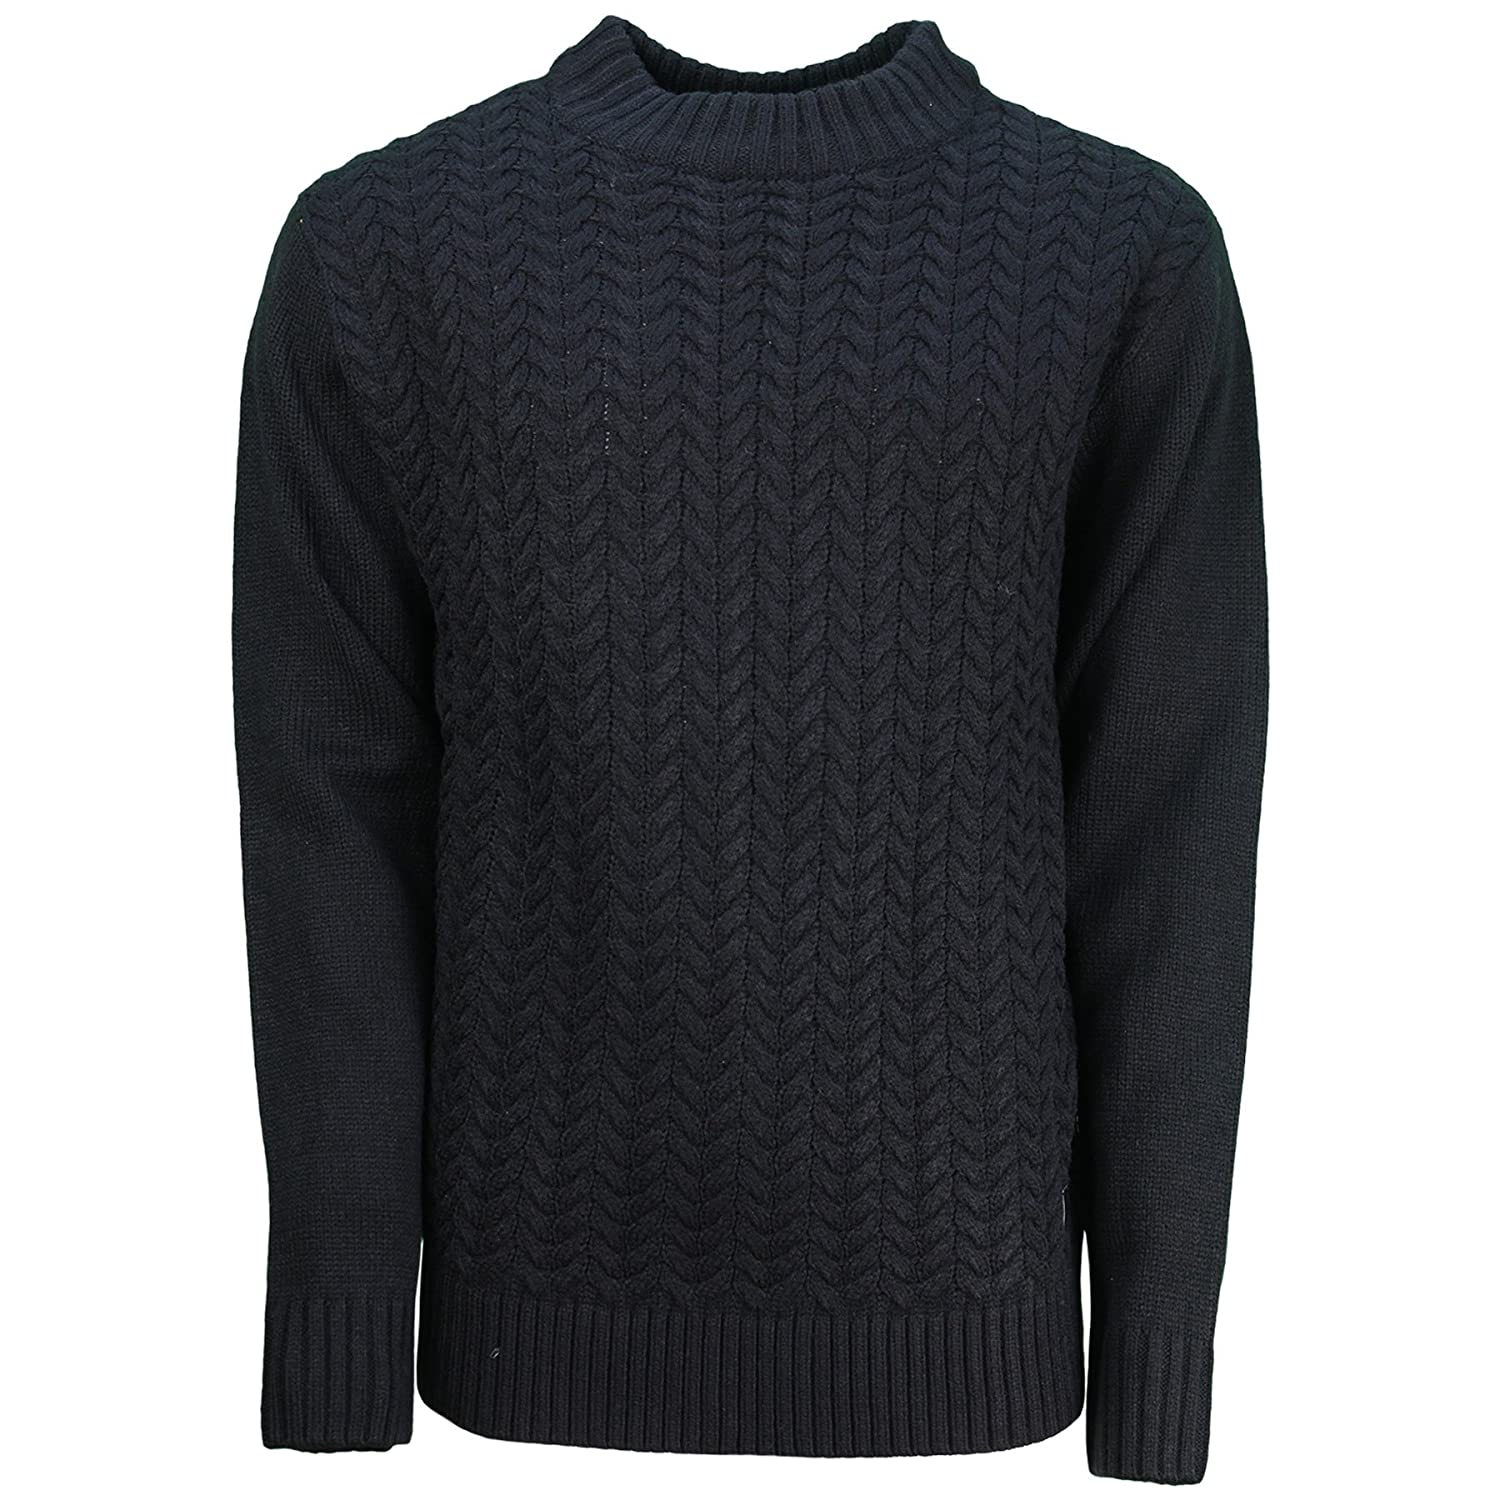 Mens SoulStar Jumper Turtle Neck Cable Knit